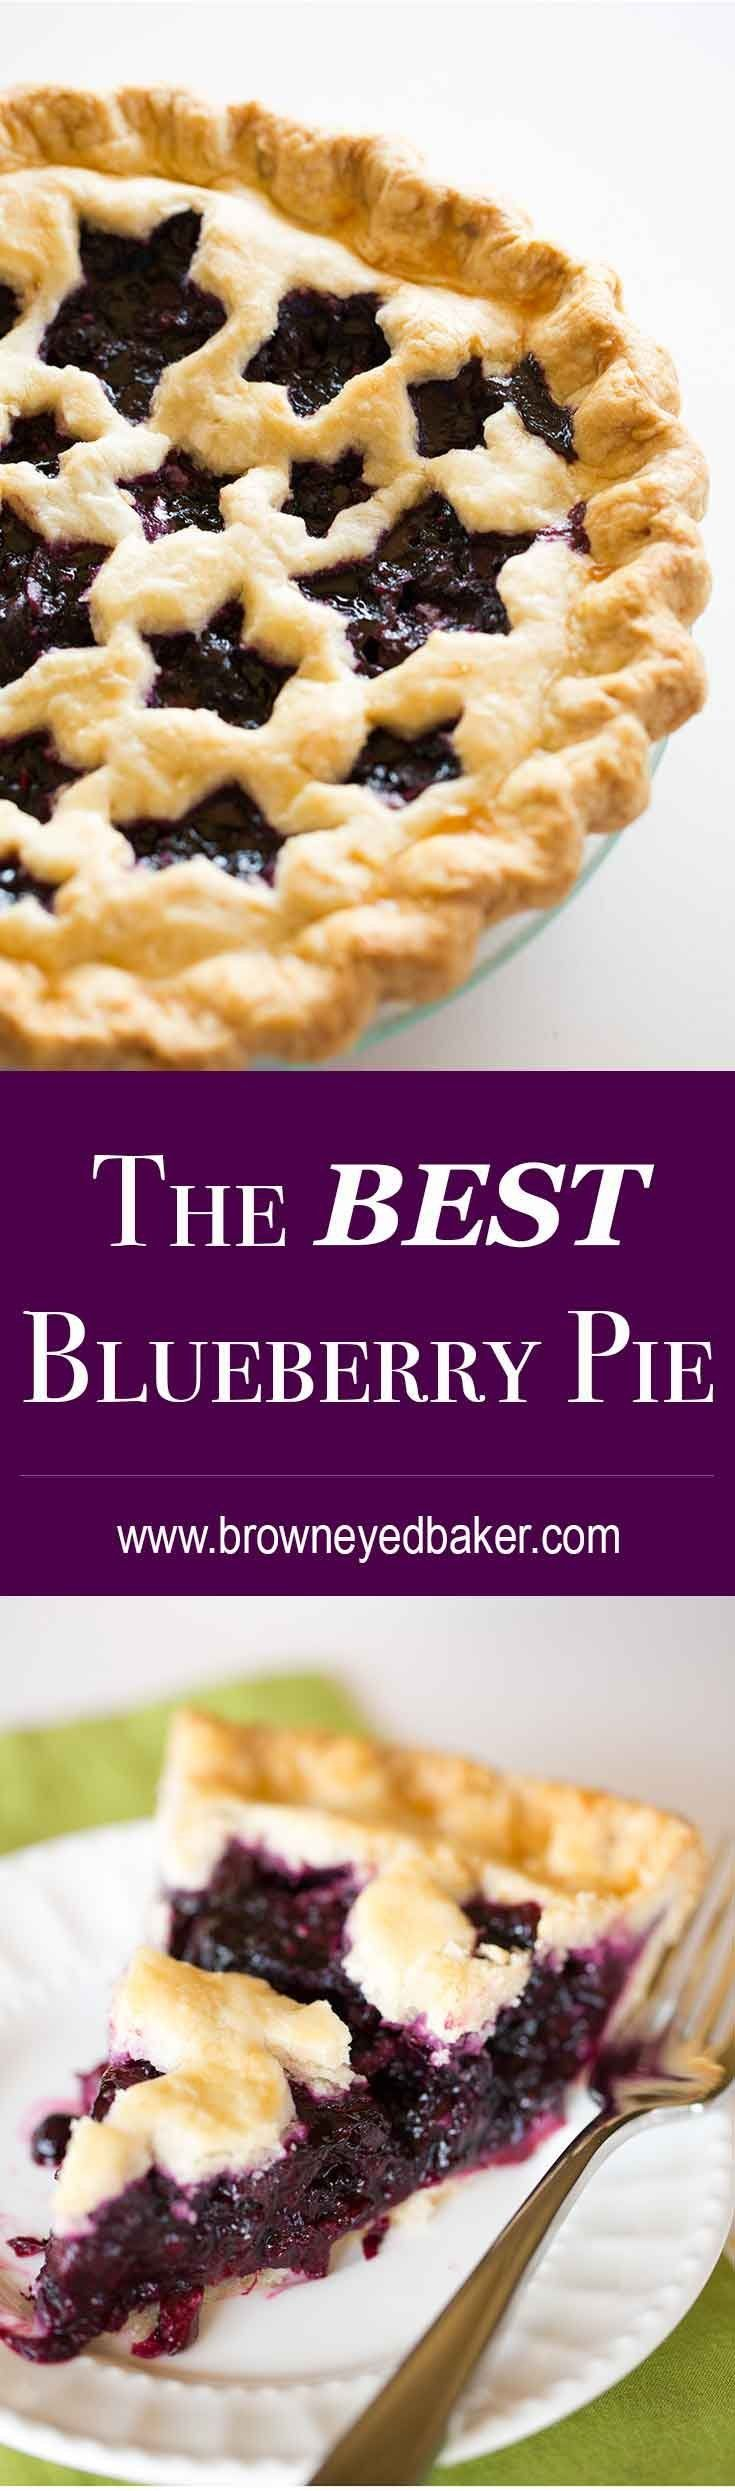 The BEST Blueberry Pie @FoodBlogs